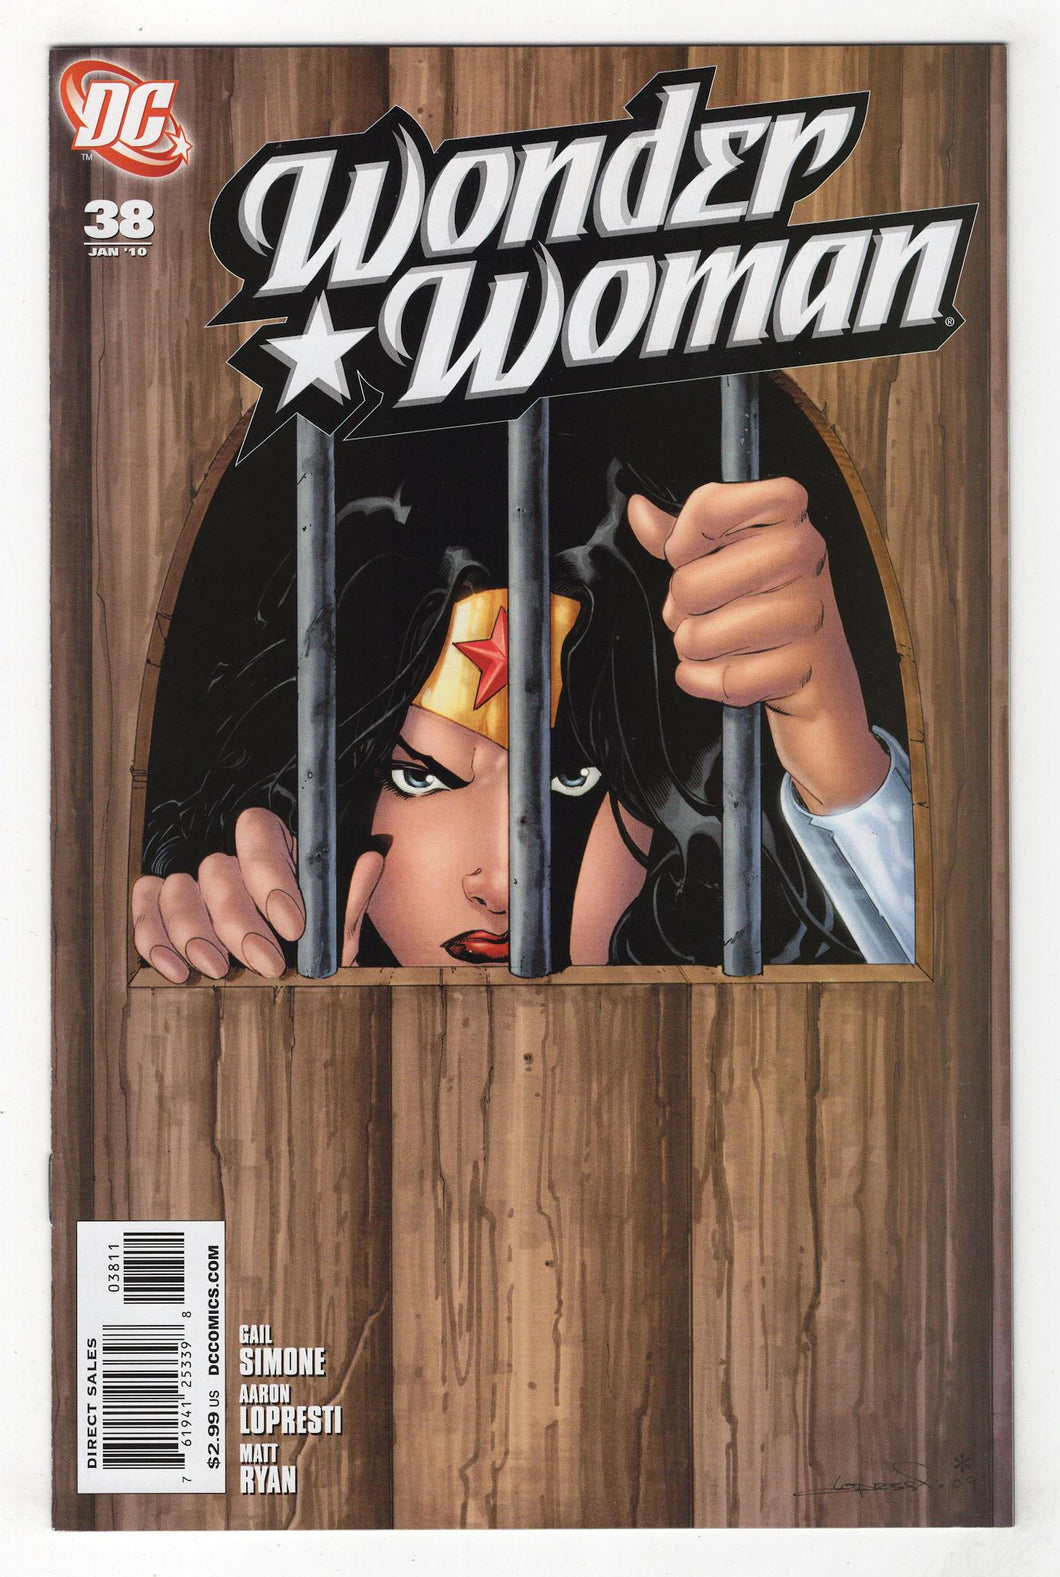 Wonder Woman #38 Cover Front